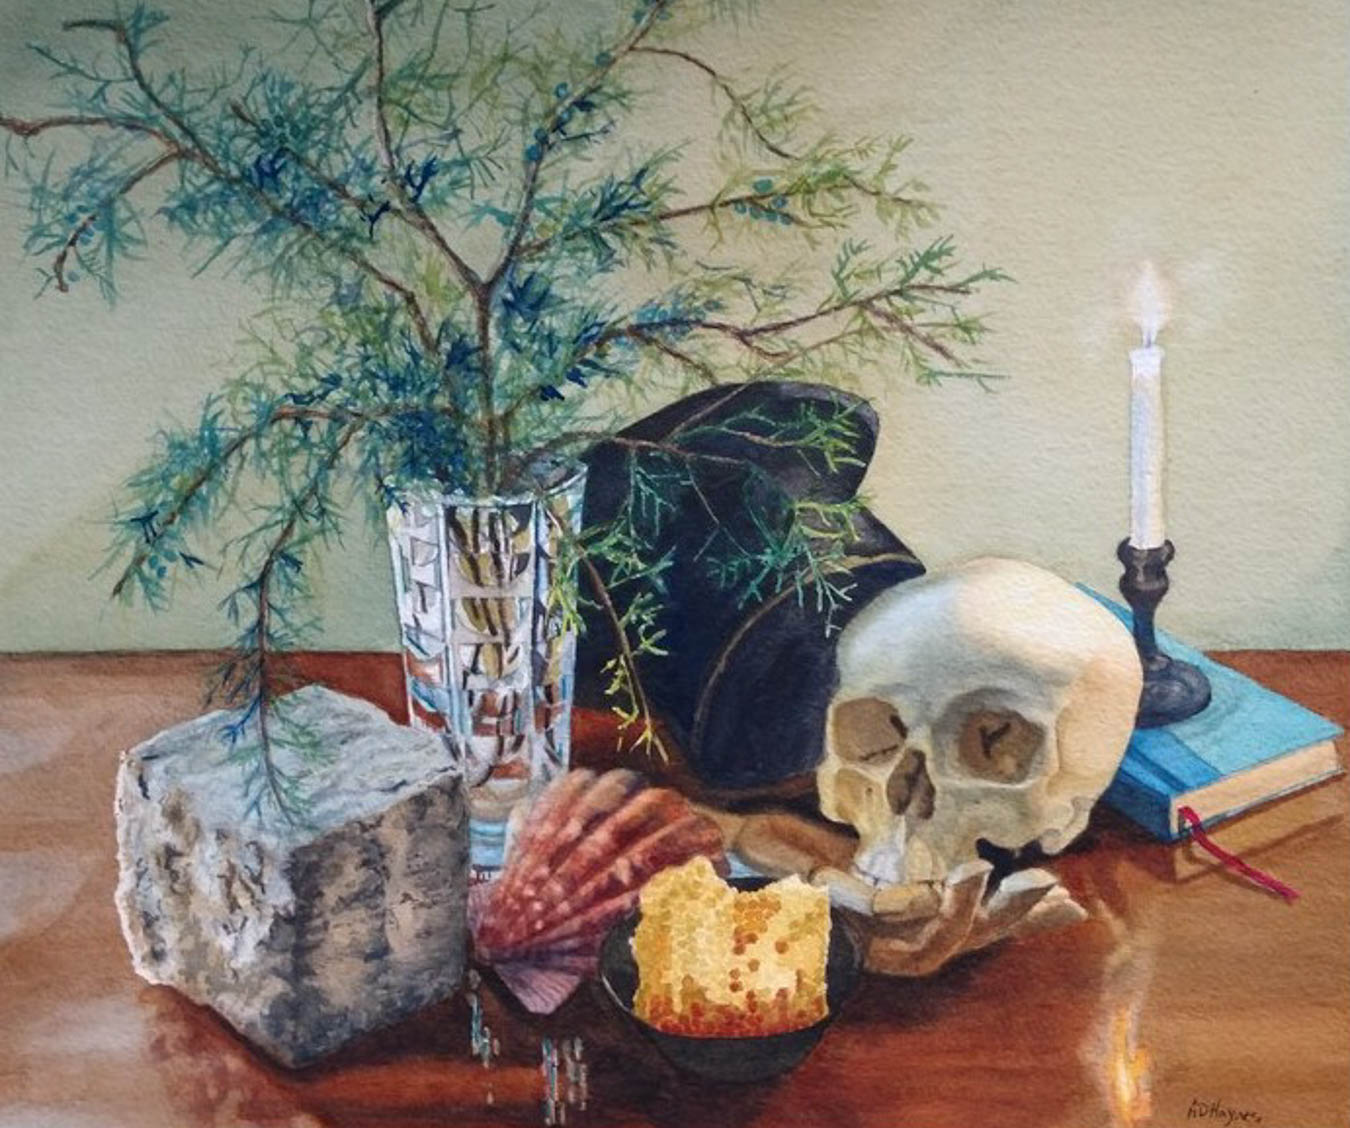 Water color painting of items on a table including a plant in a vase, a skull, a shell, a candle and other items.